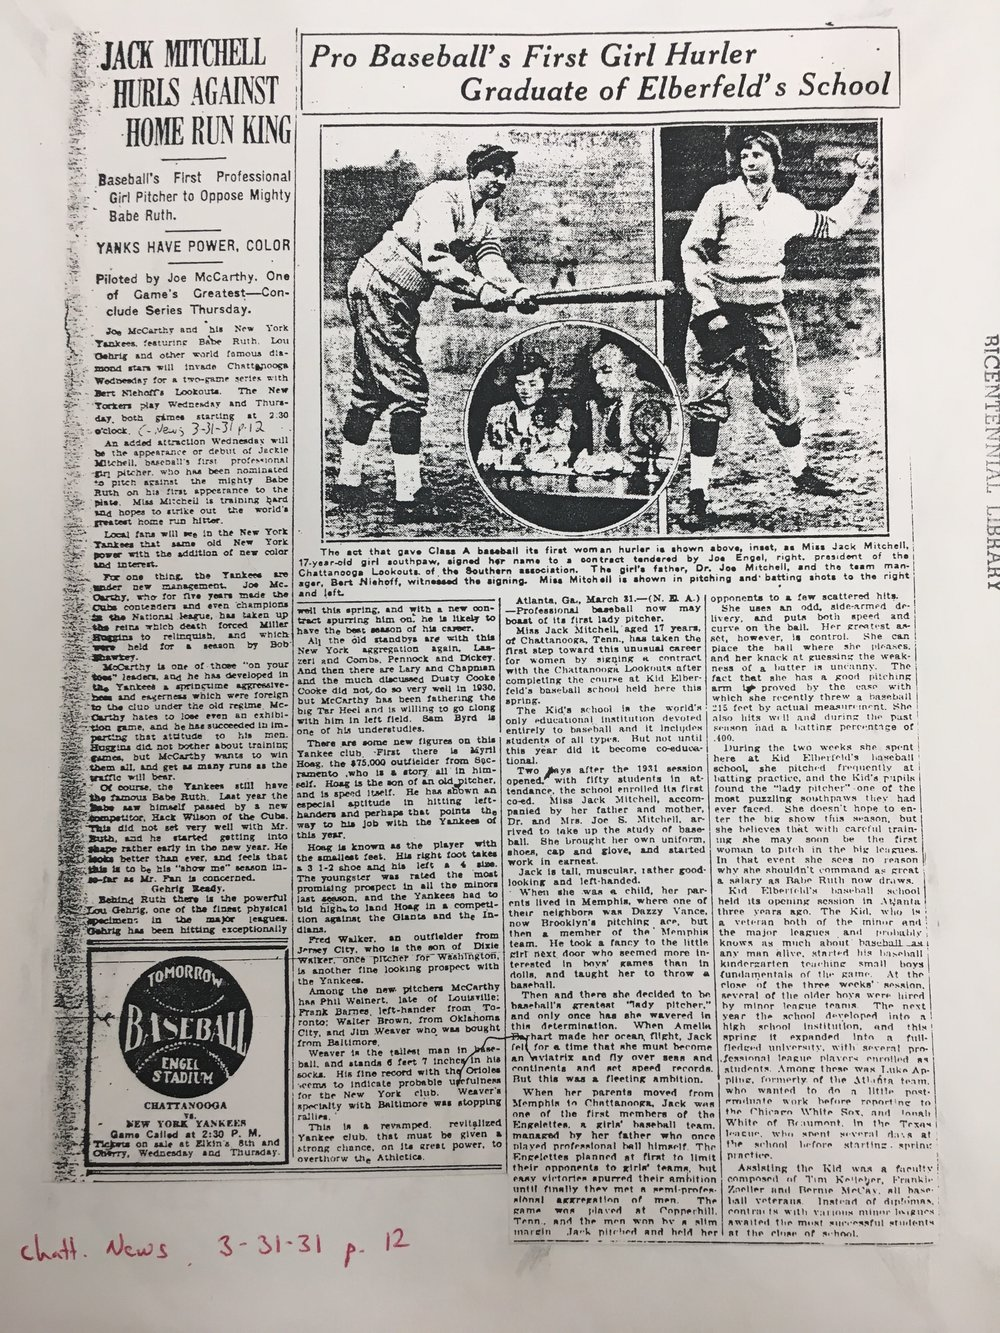 An article in the Chattanooga News builds hype for the exhibition game before Jackie Mitchell took the mound against Yankees. (Chattanooga Public Library archives)